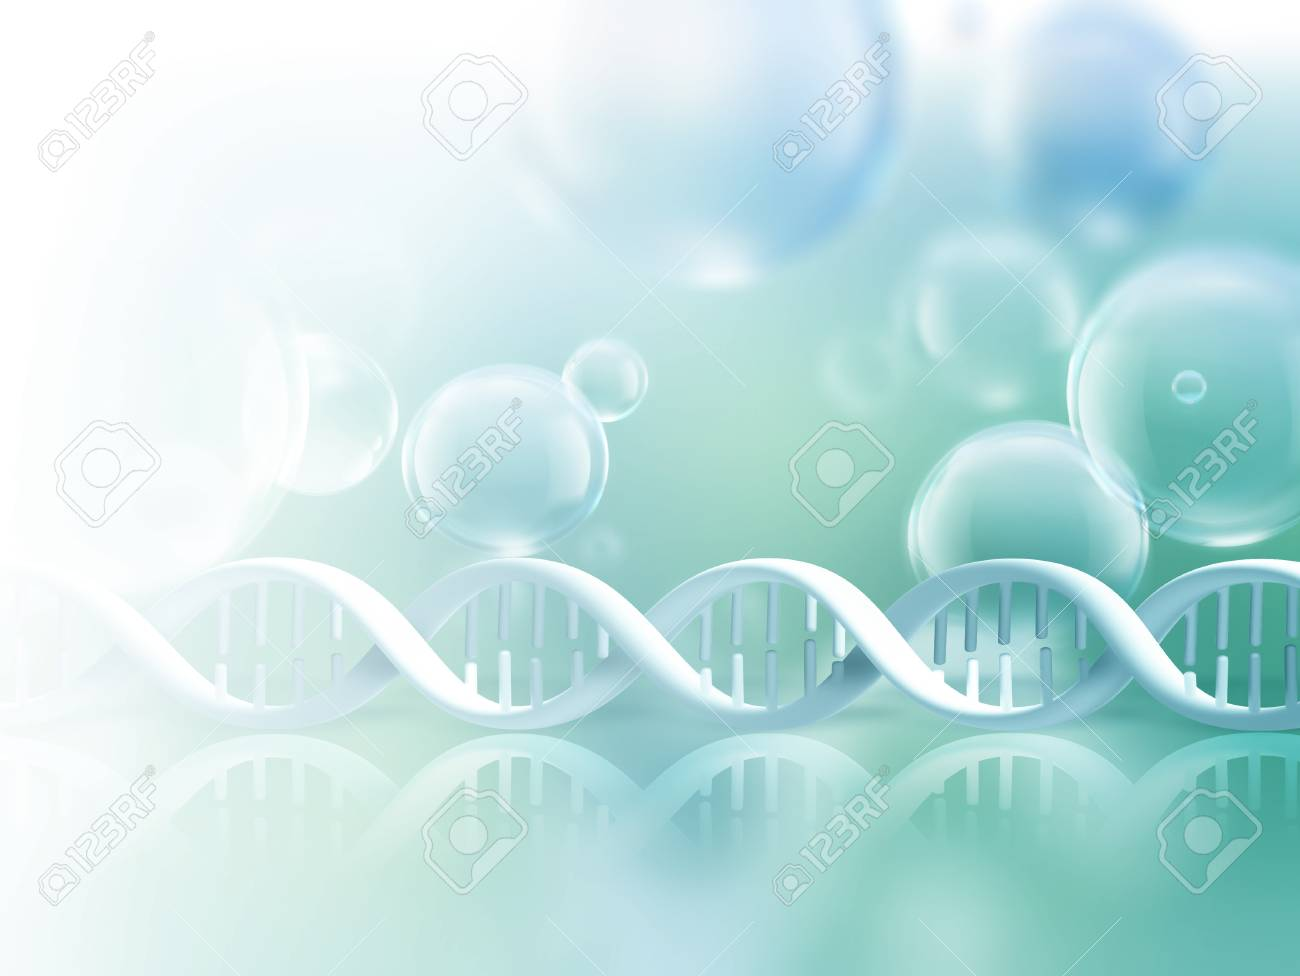 Abstract science background with DNA strands - 58116629